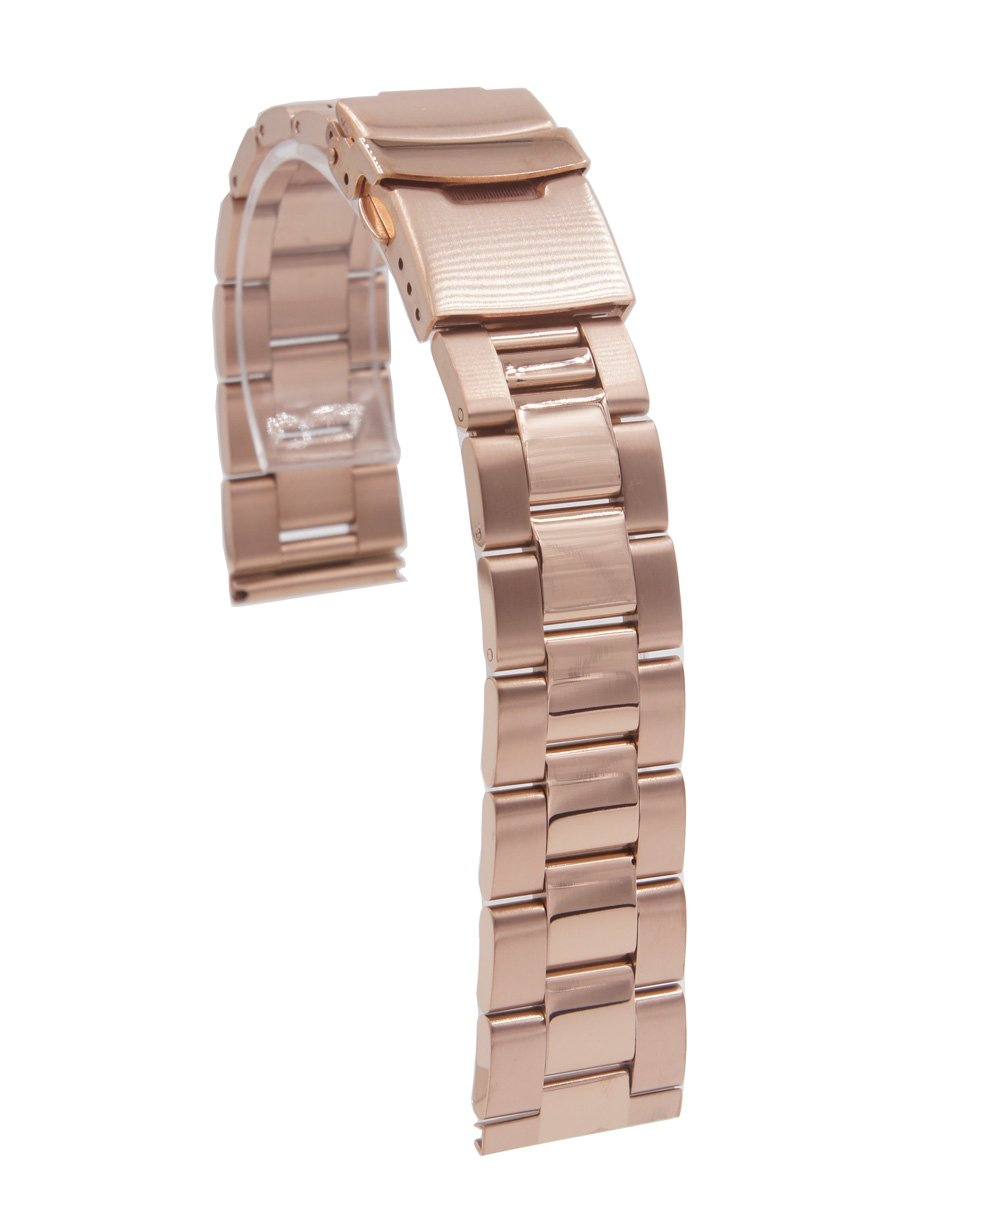 @ccessory 20mm Stainless Steel Bracelet Watch Band Strap for Samsung Gear S2 Classic Rose Gold SM-R7320ZDAXAR (Rose Gold A)